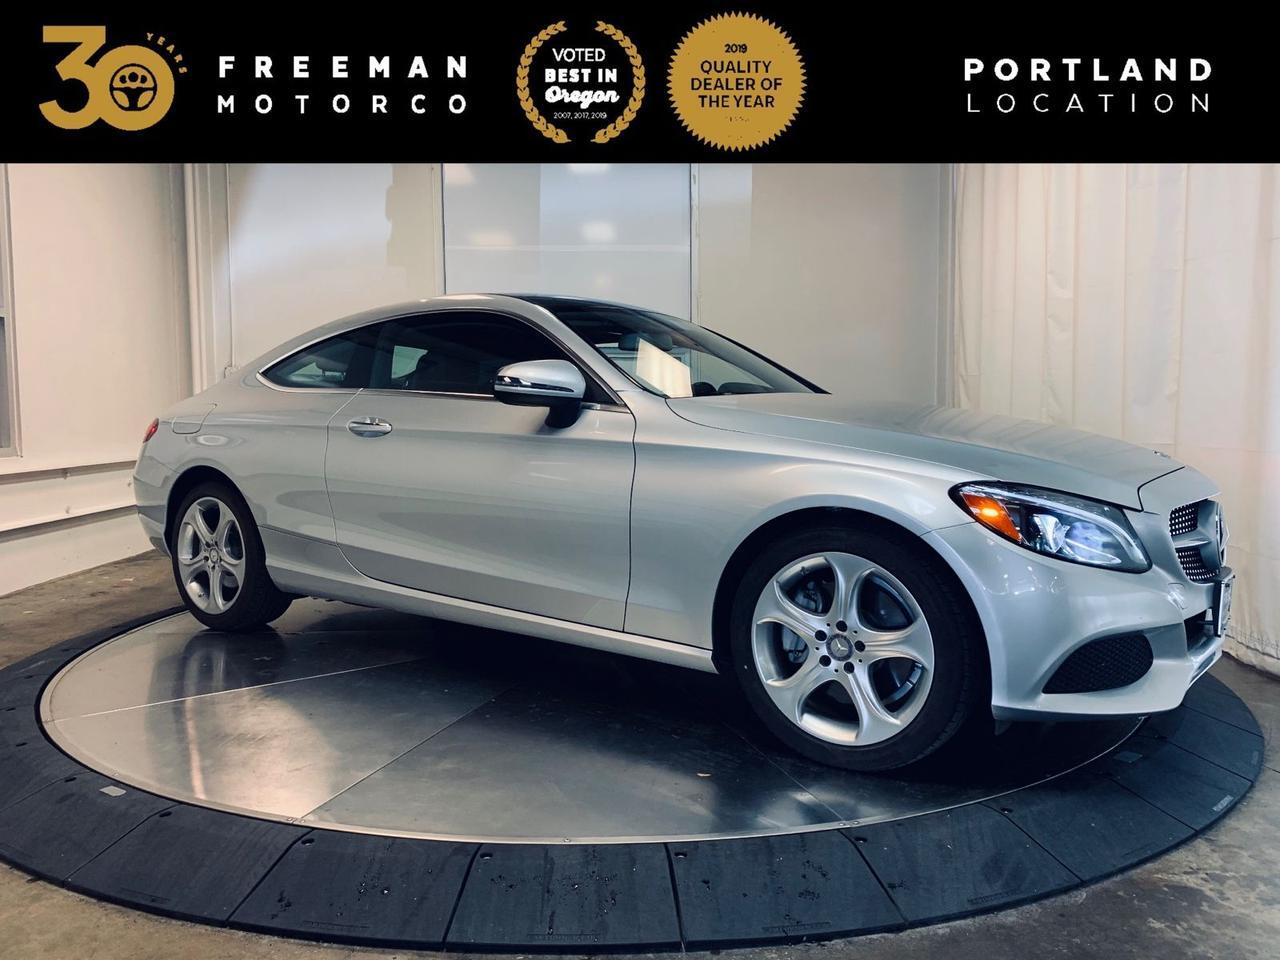 2017 Mercedes-Benz C 300 14K Miles Backup Cam Blind Spot Assist Portland OR